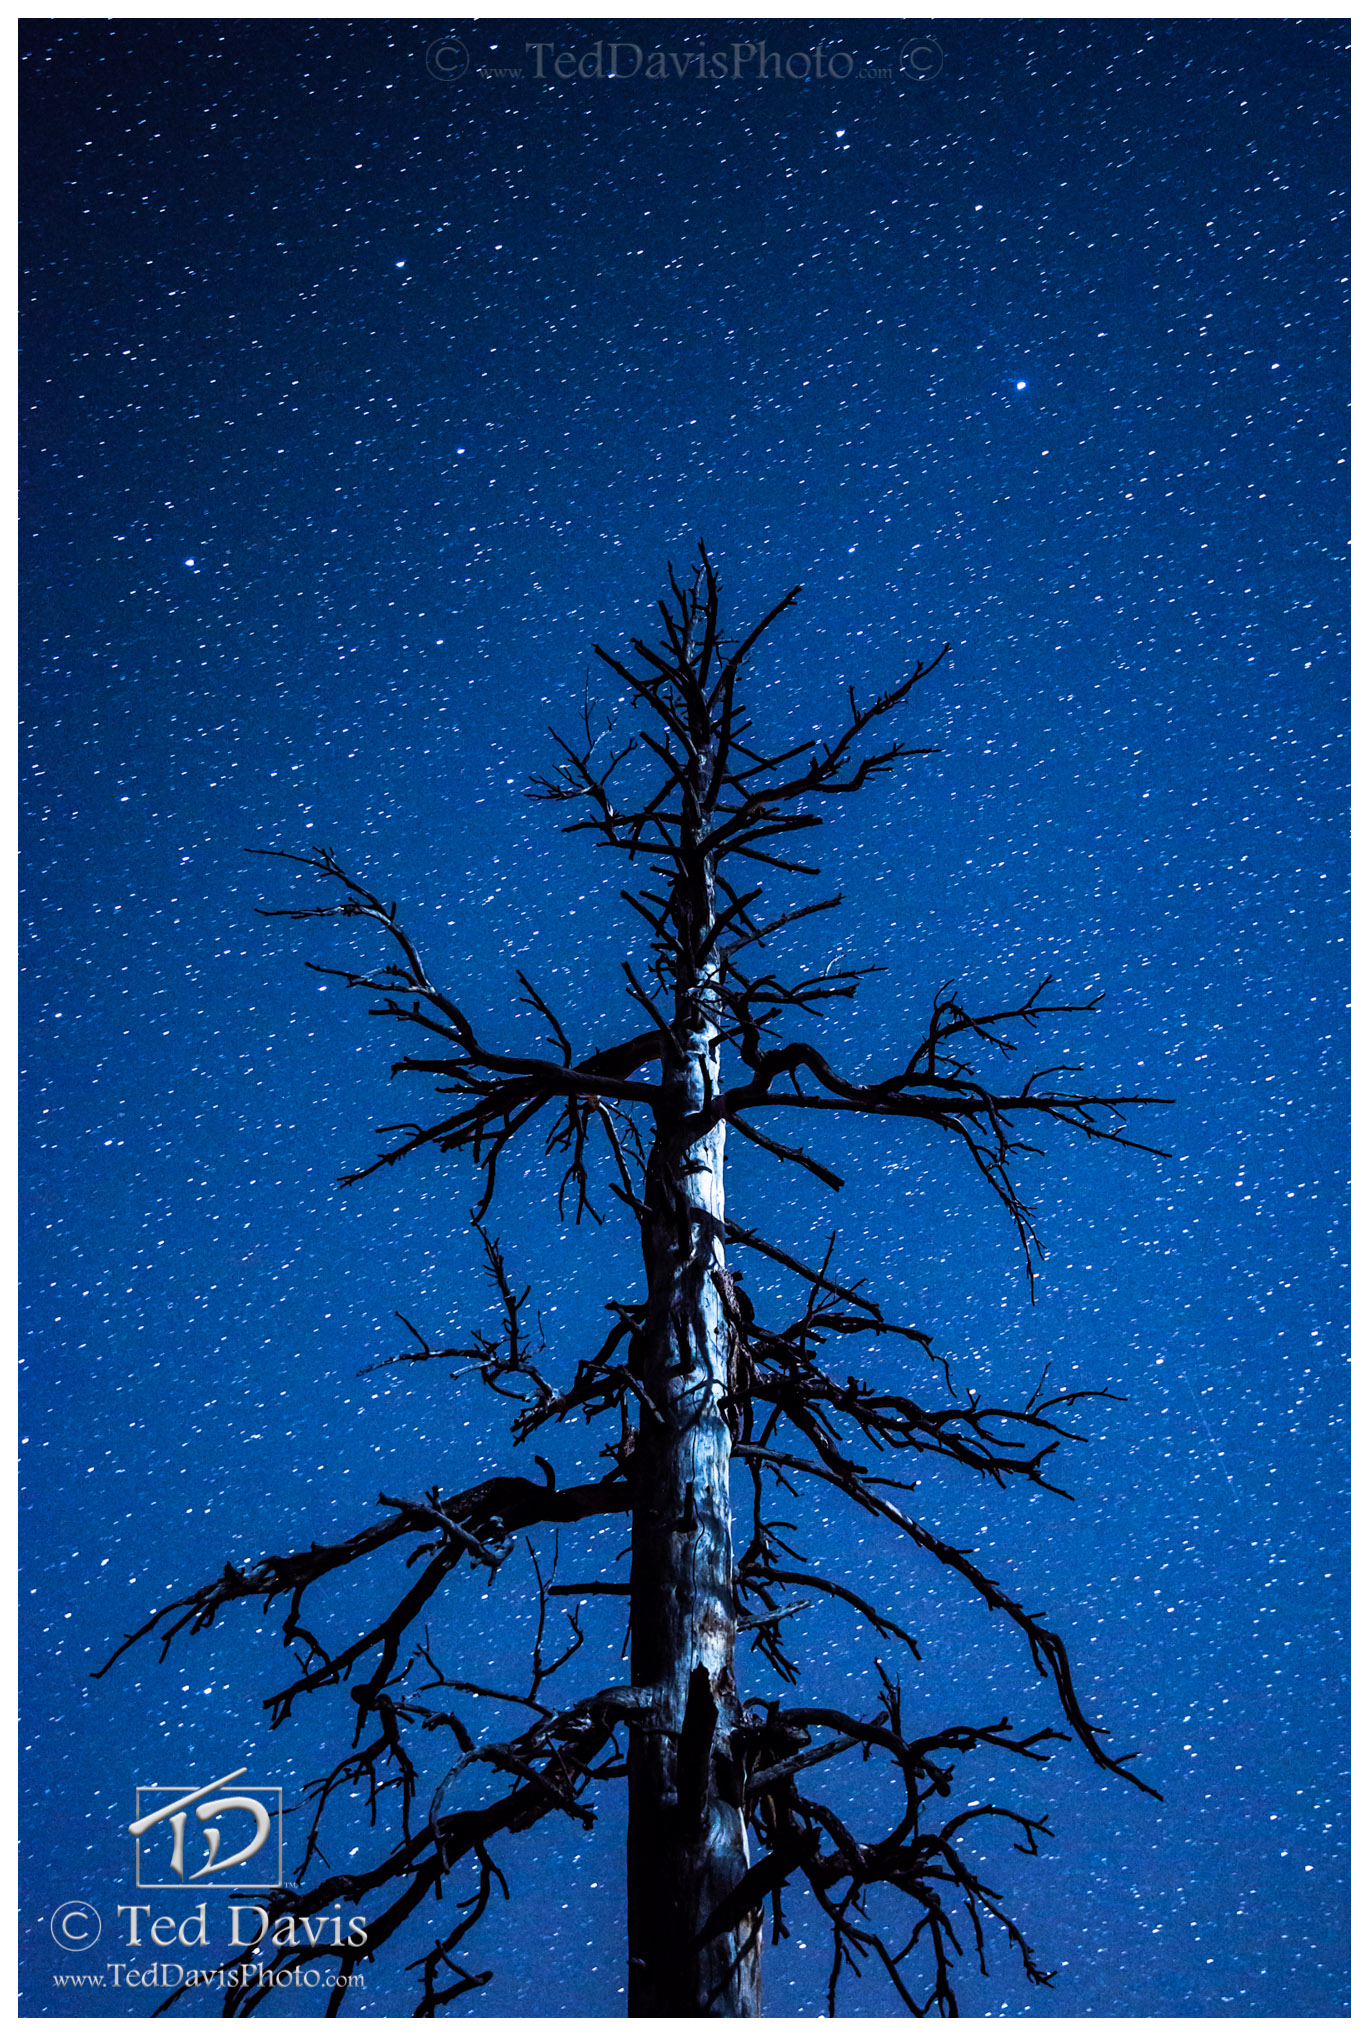 stars, astrophotography, silent night, beauty, tree, photo